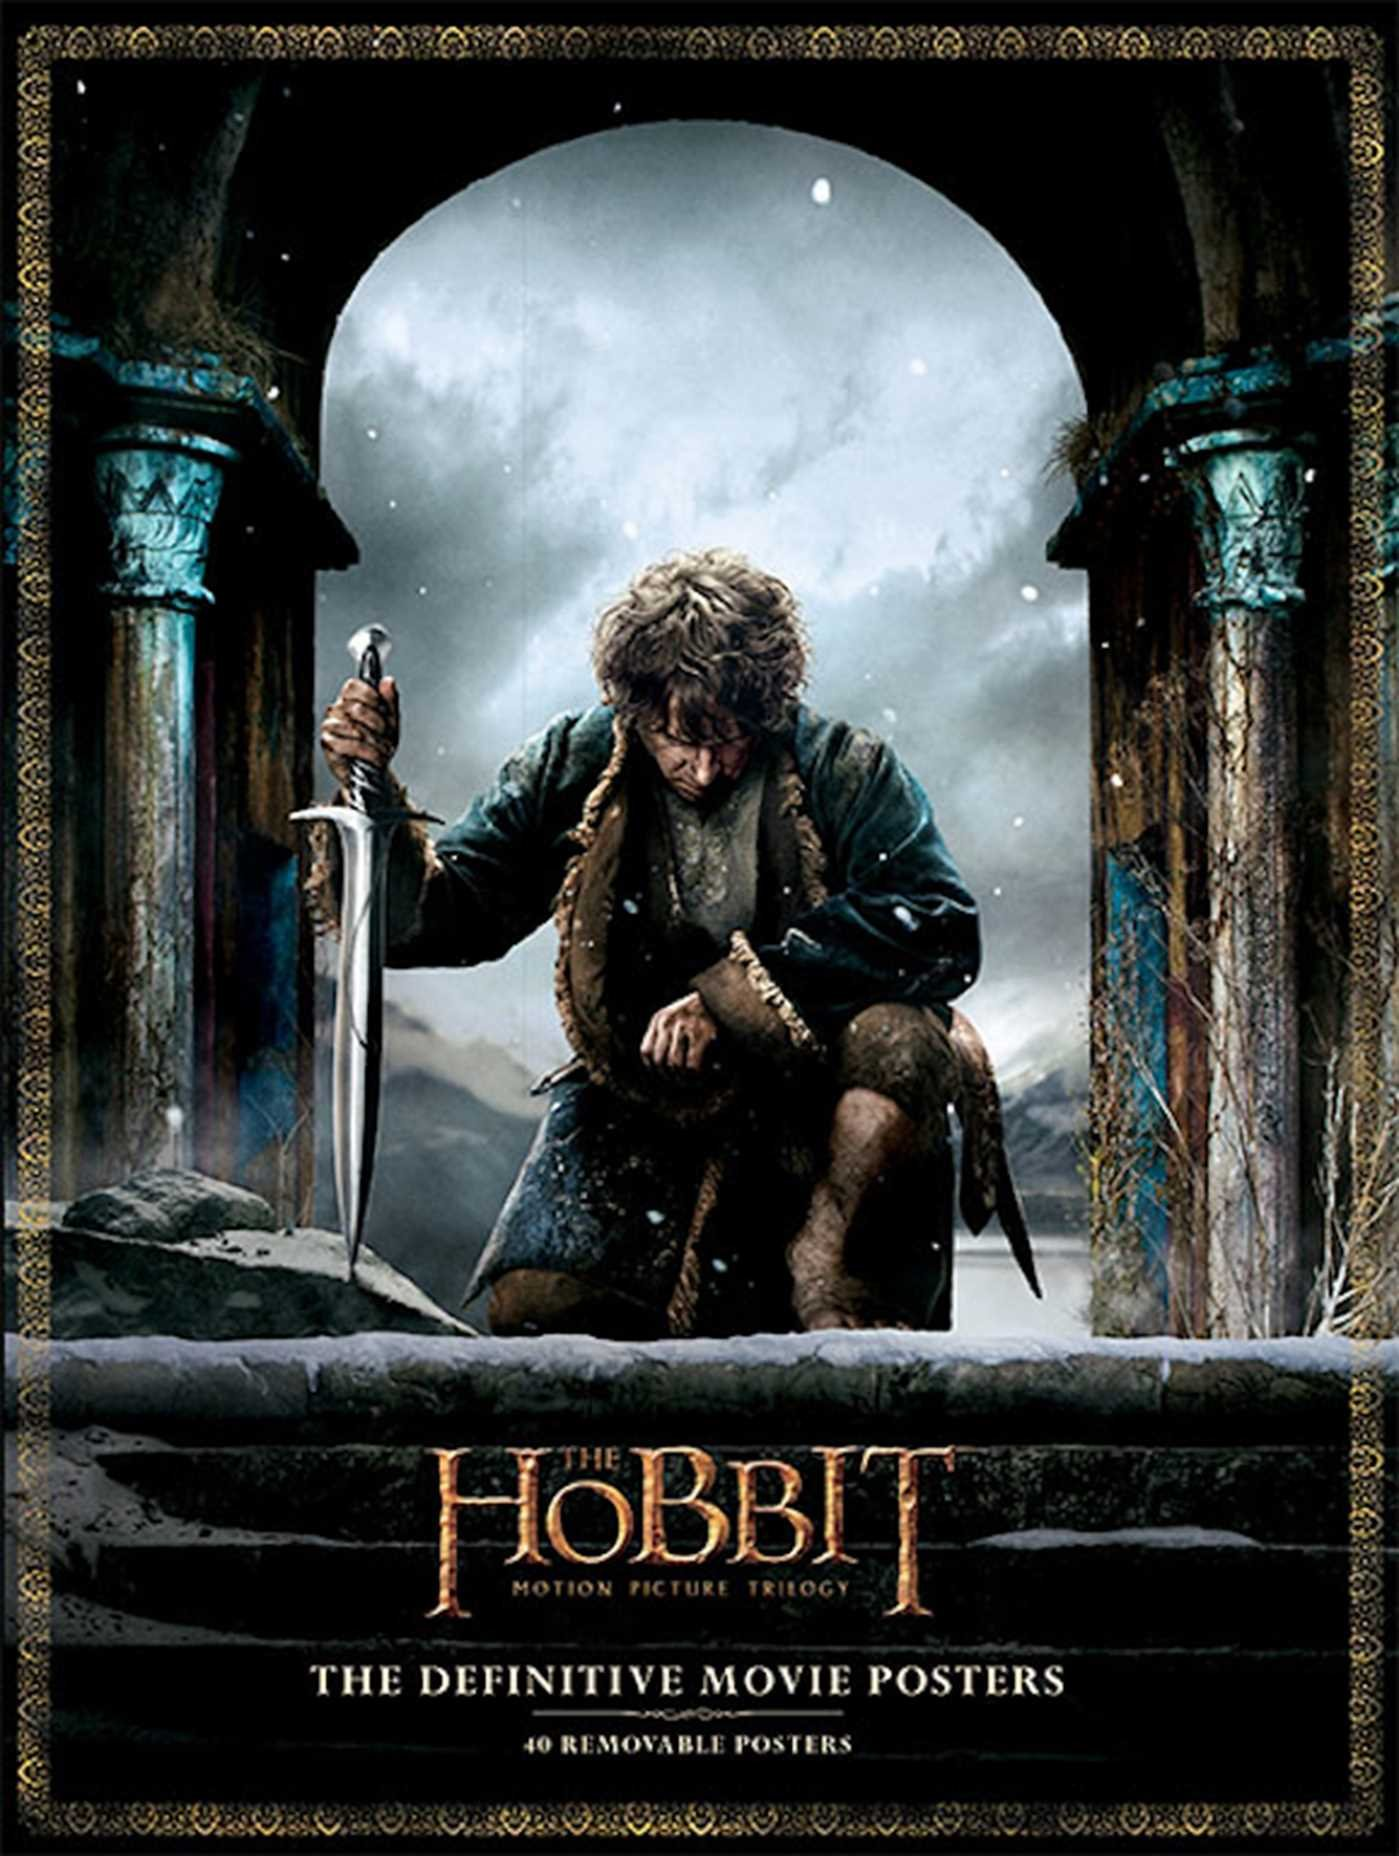 The Hobbit: The Definitive Movie Posters (Insights Poster Collections)  Paperback – April 14, 2015